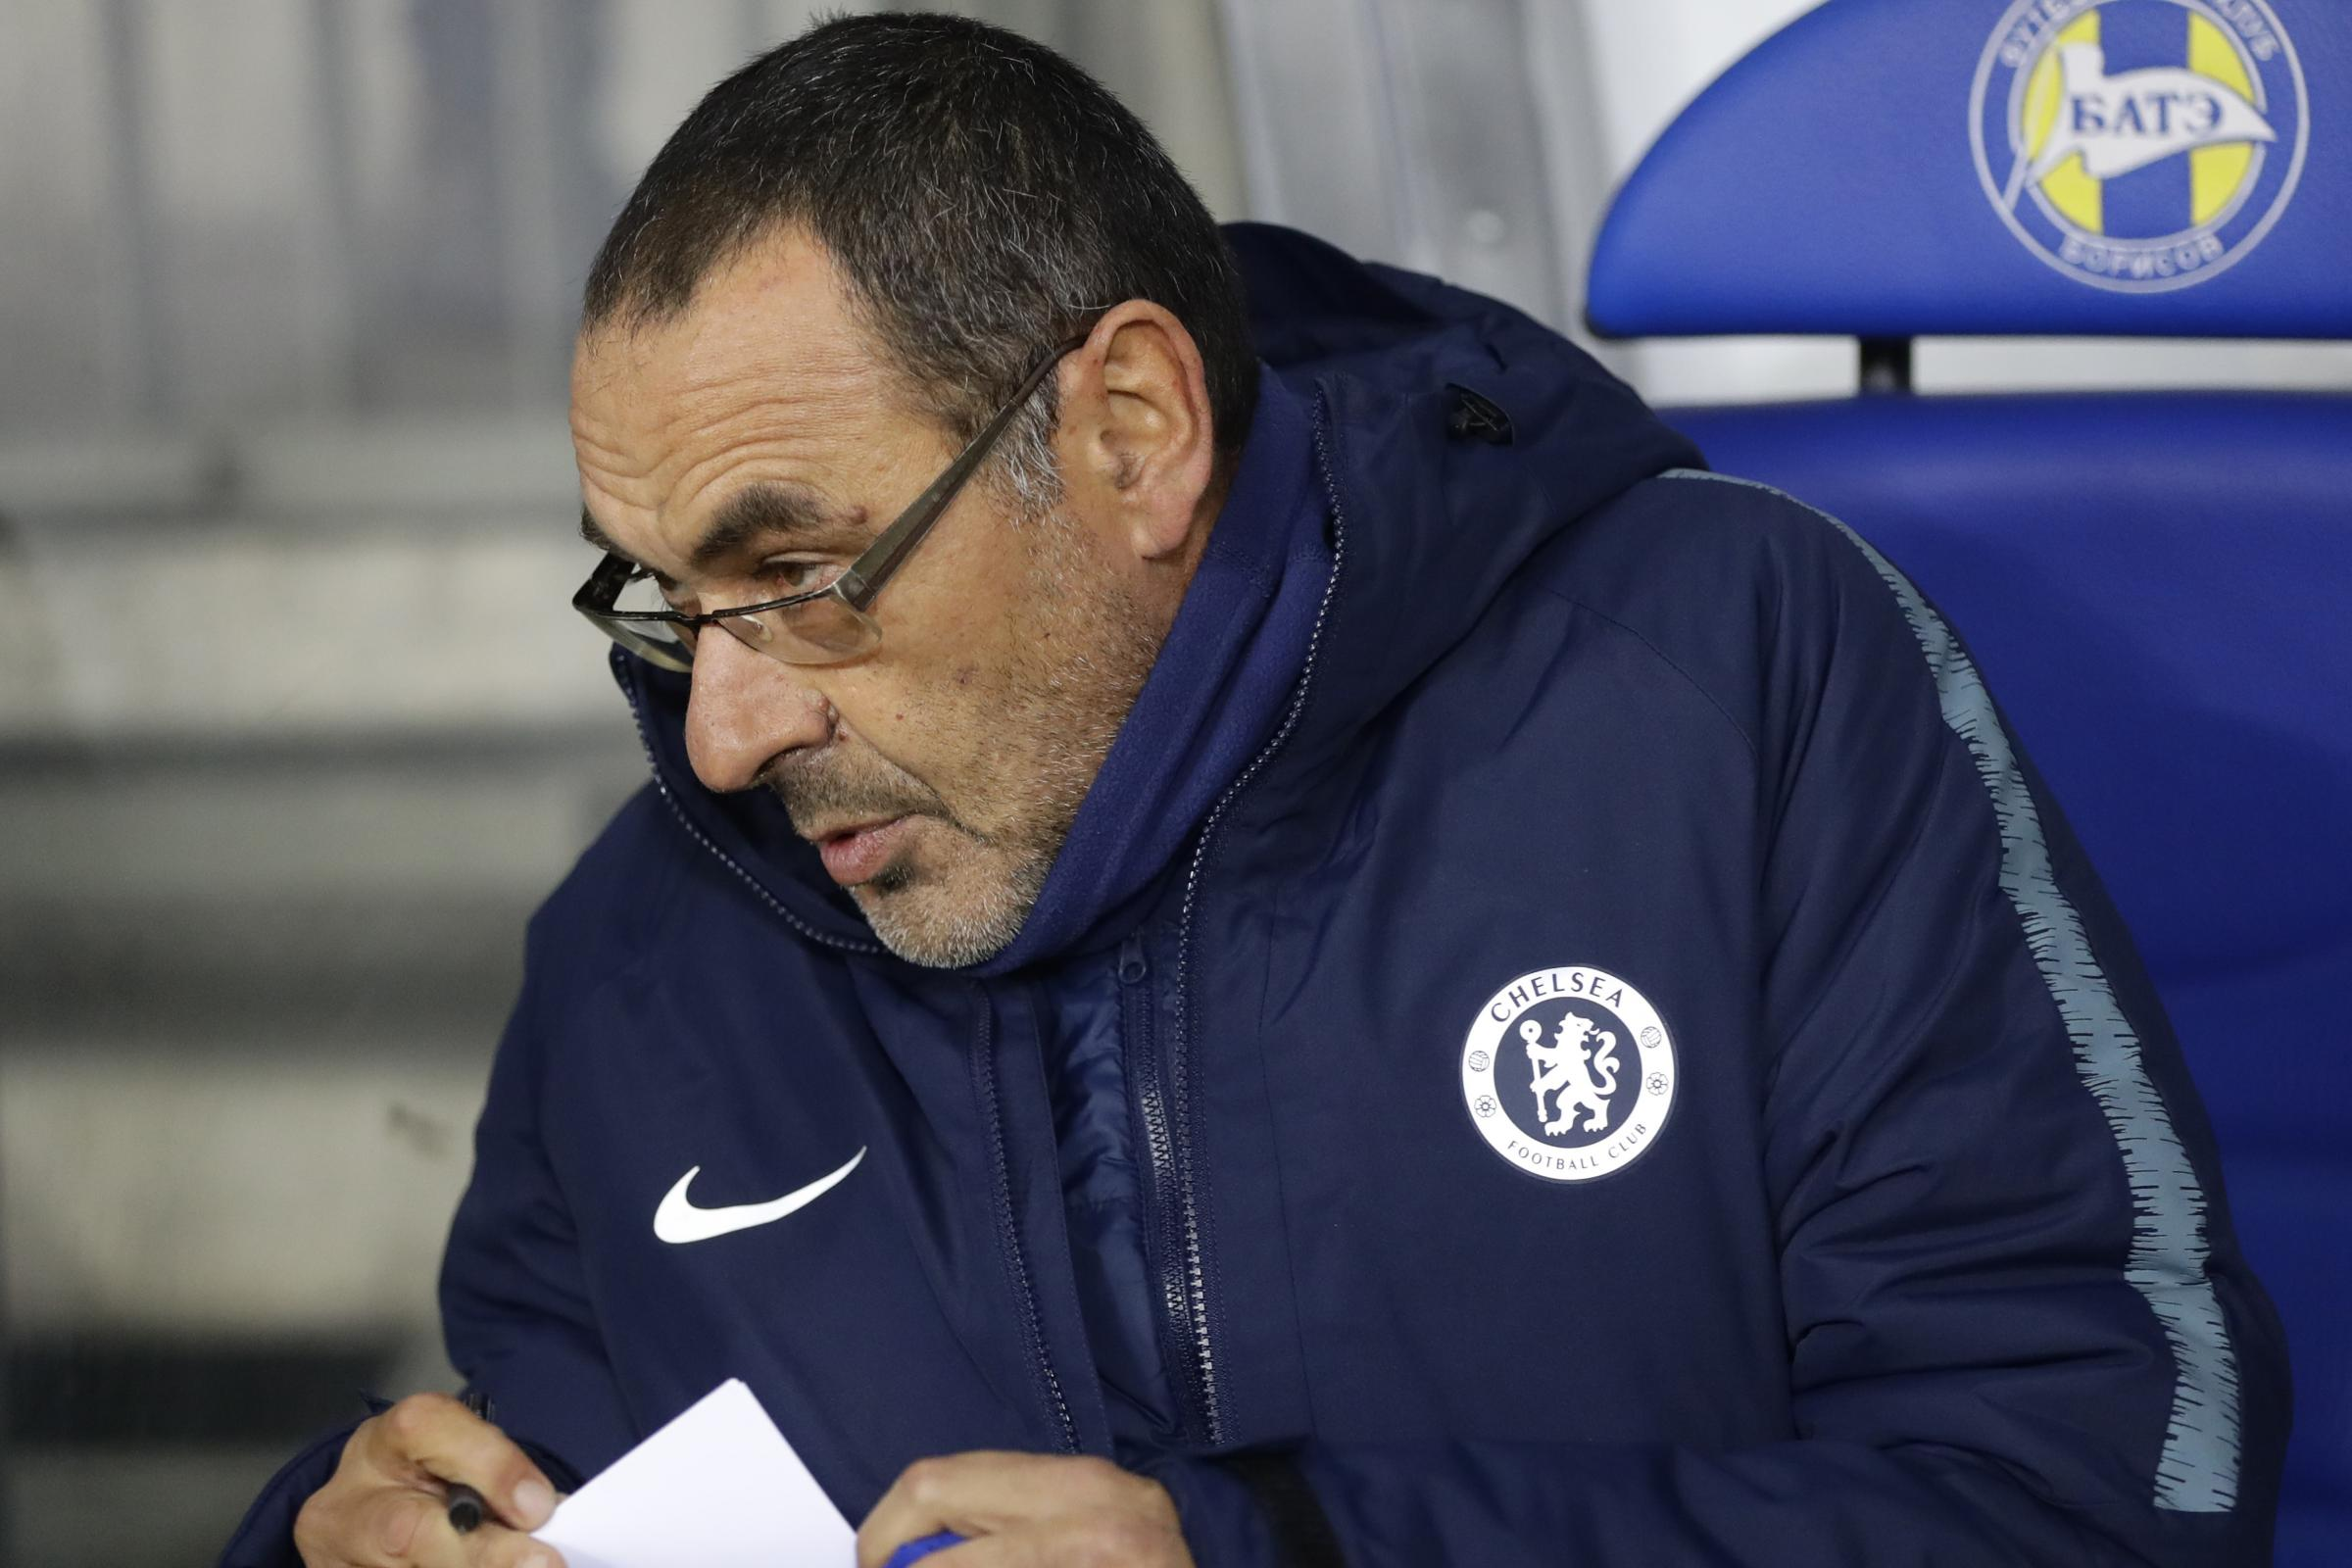 Maurizio Sarri was battling a fever in Belarus